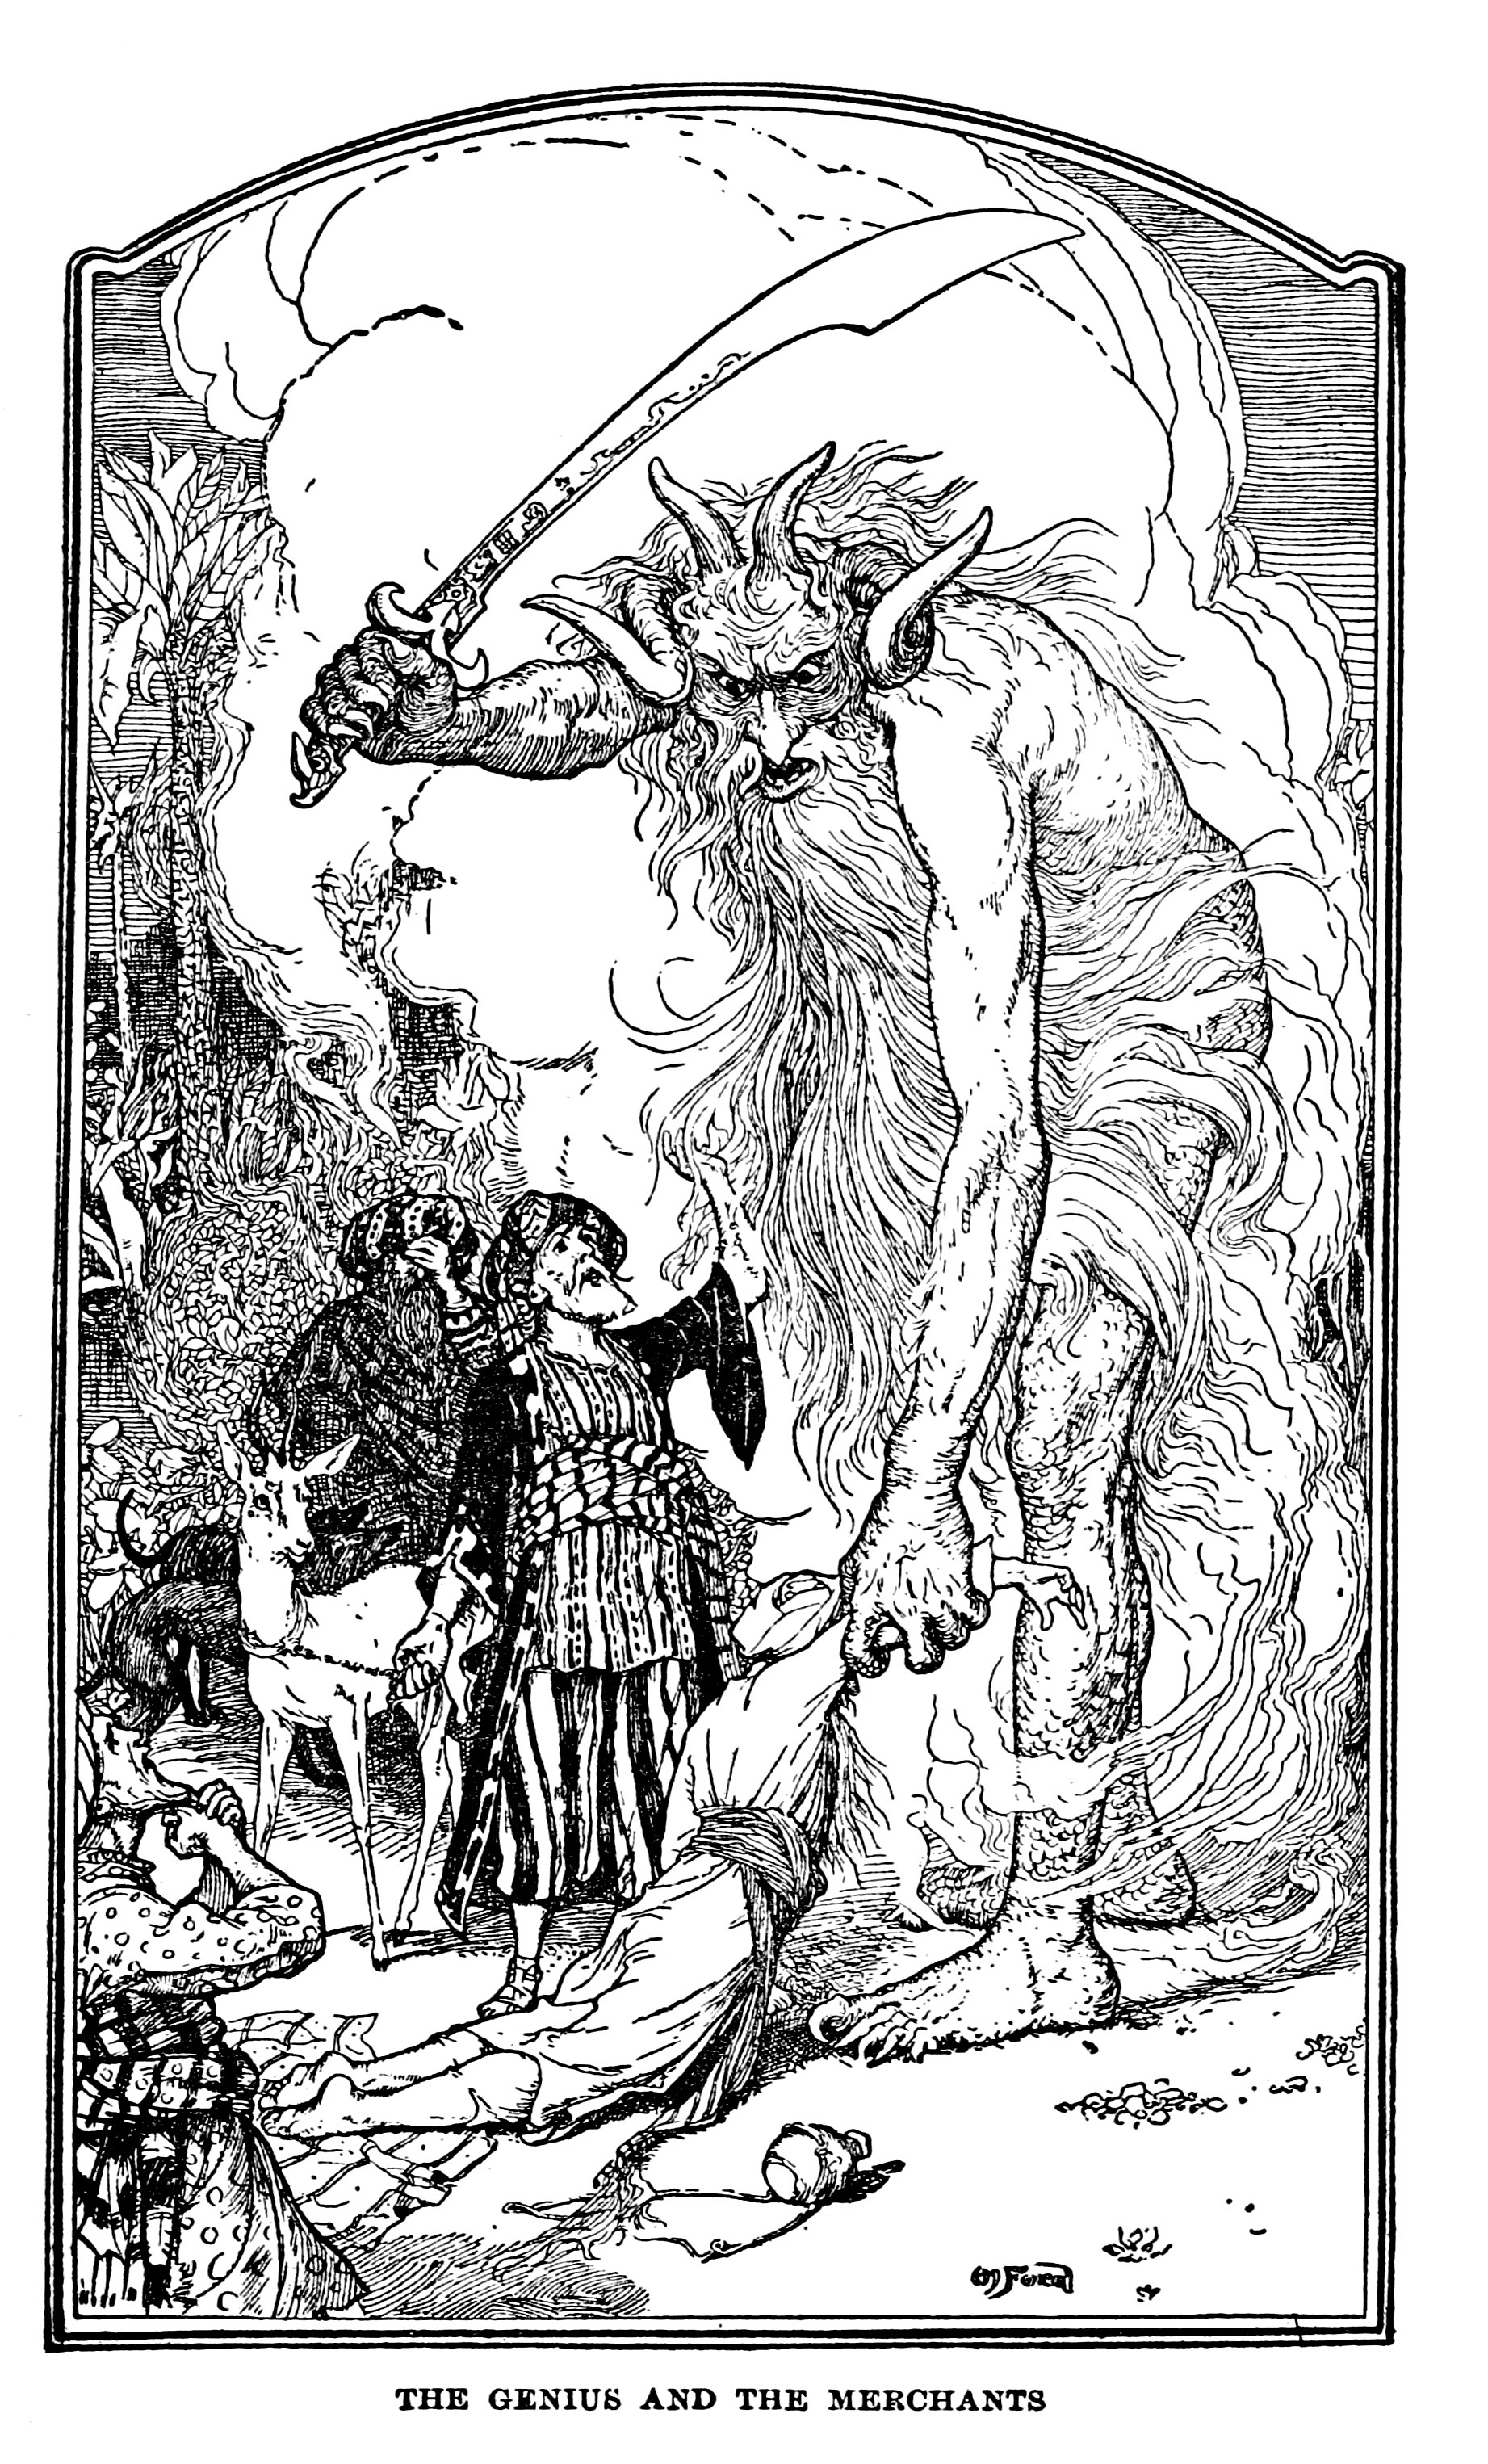 Henry Justice Ford - The Arabian nights entertainments selected and edited by Andrew Lang, 1898 (illustration 7)